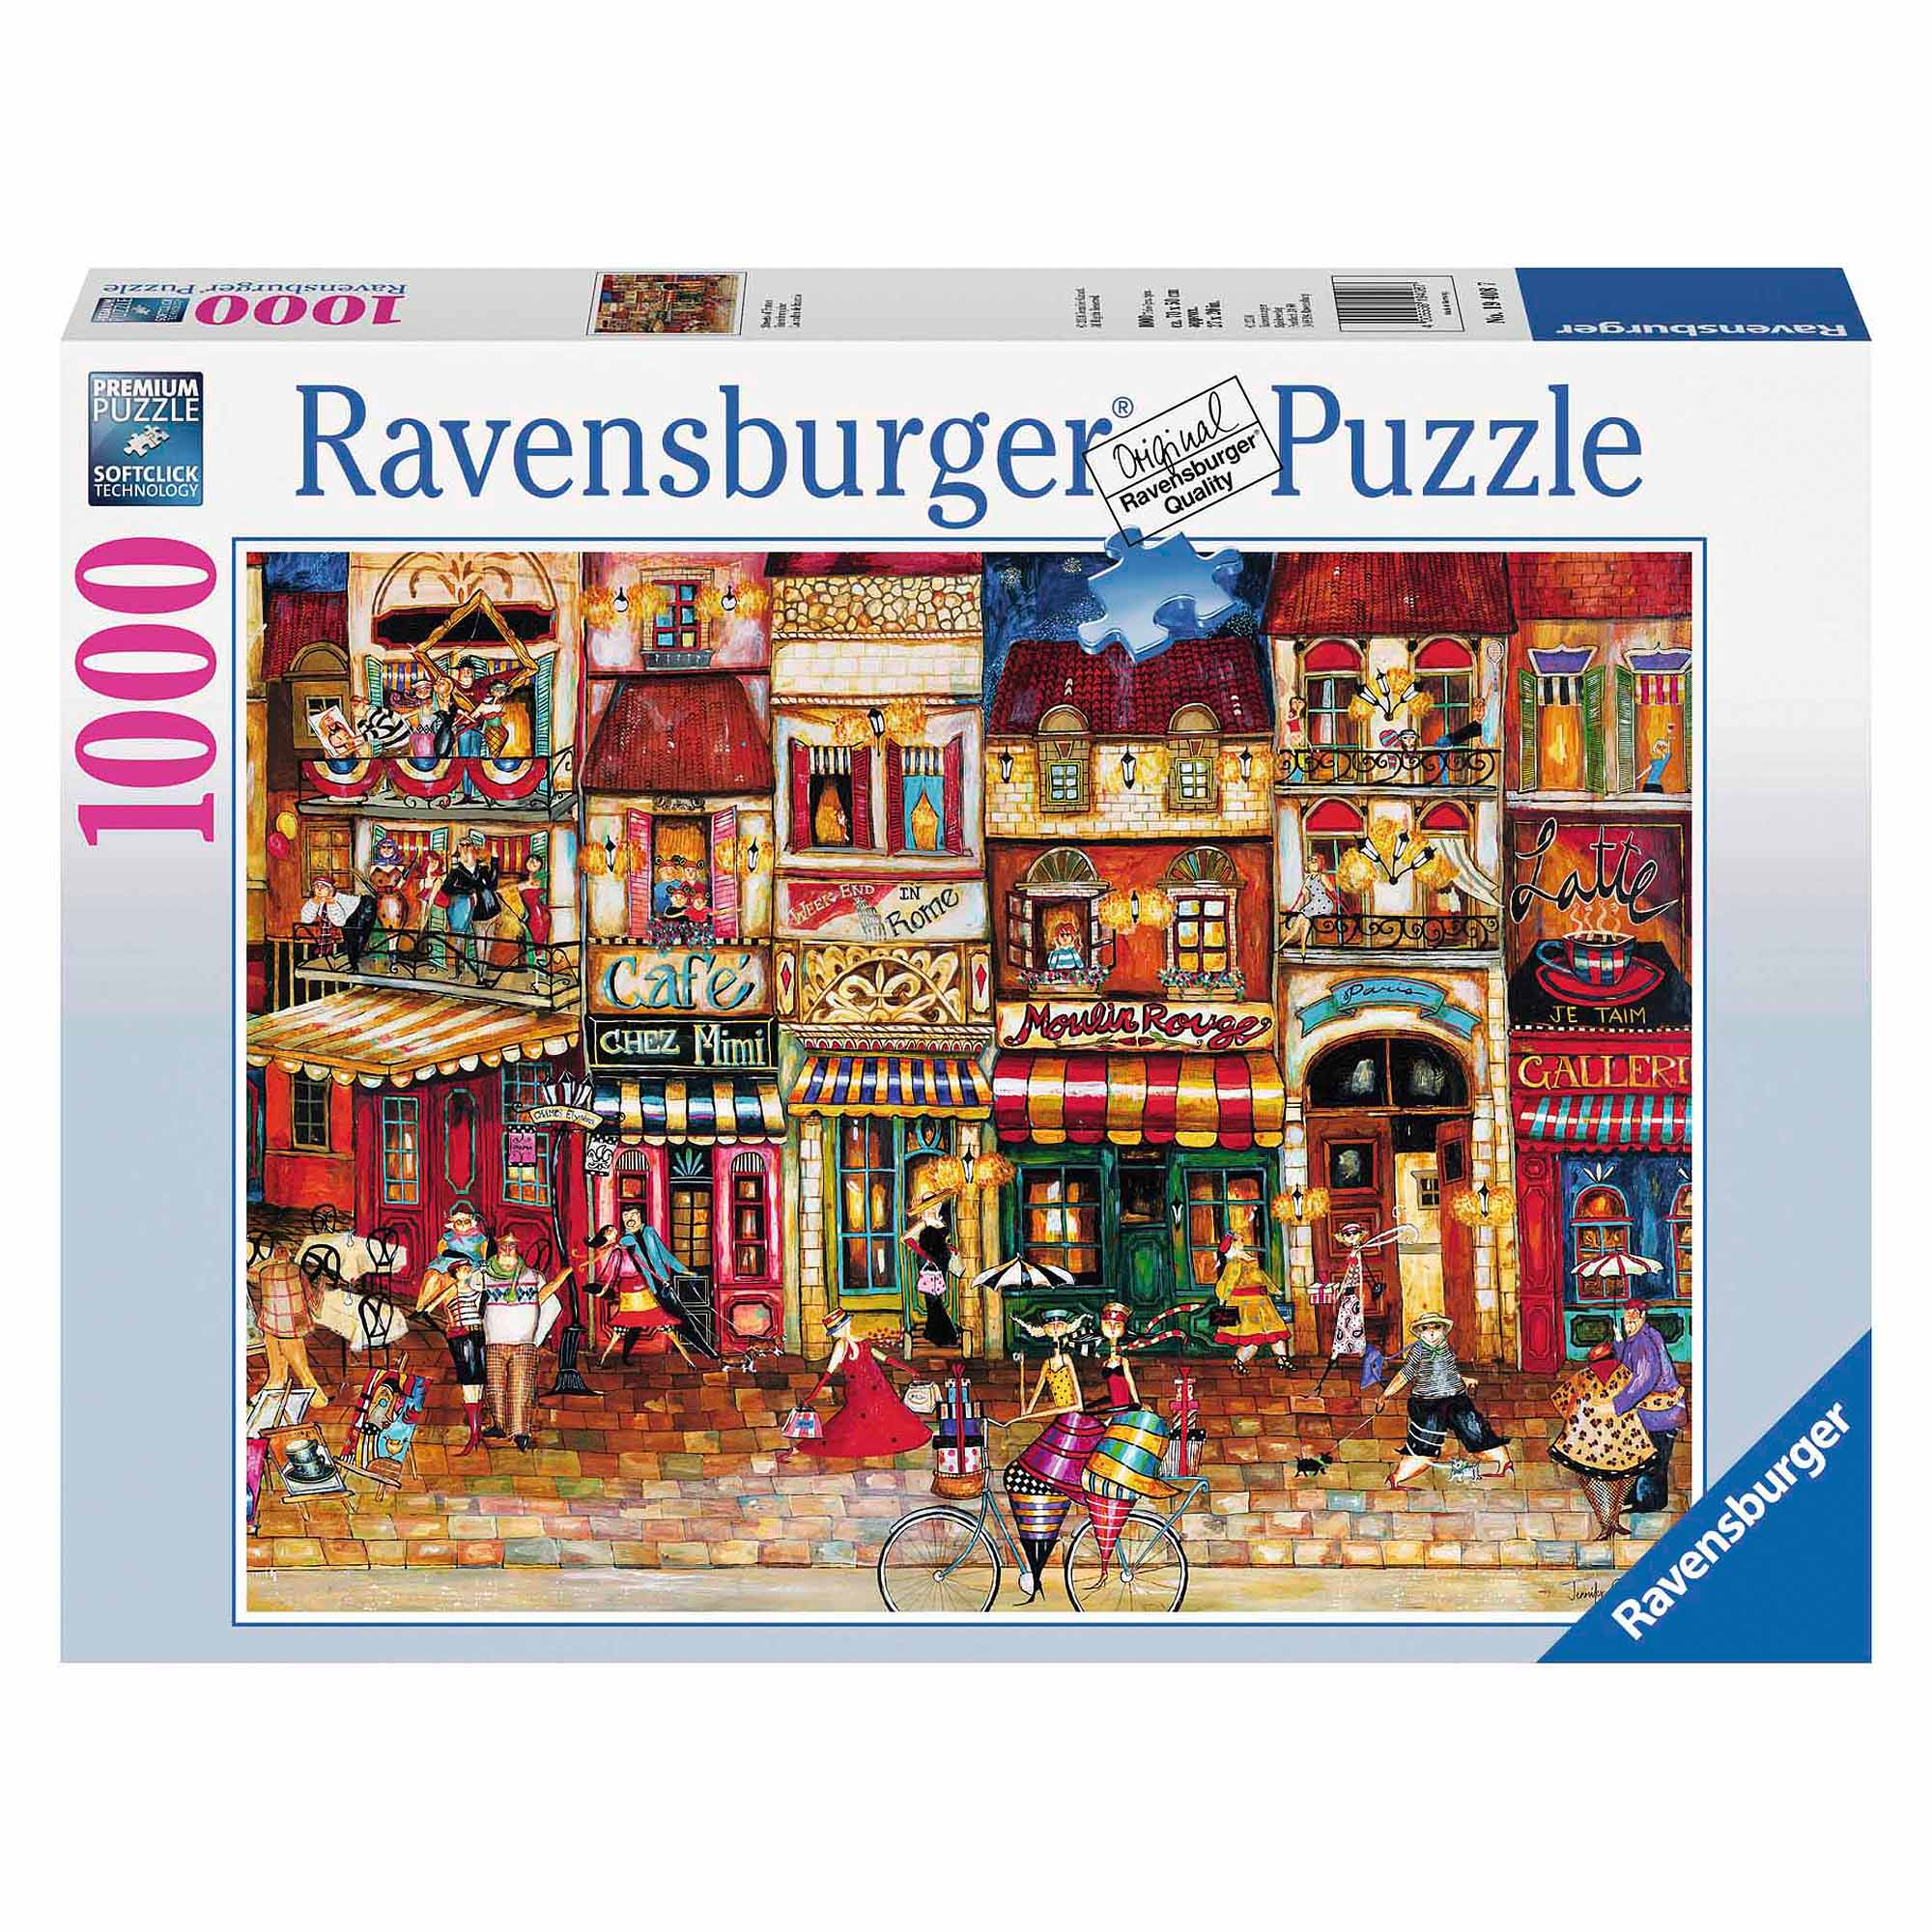 Streets of France Puzzle, 1,000 Pieces by Ravensburger